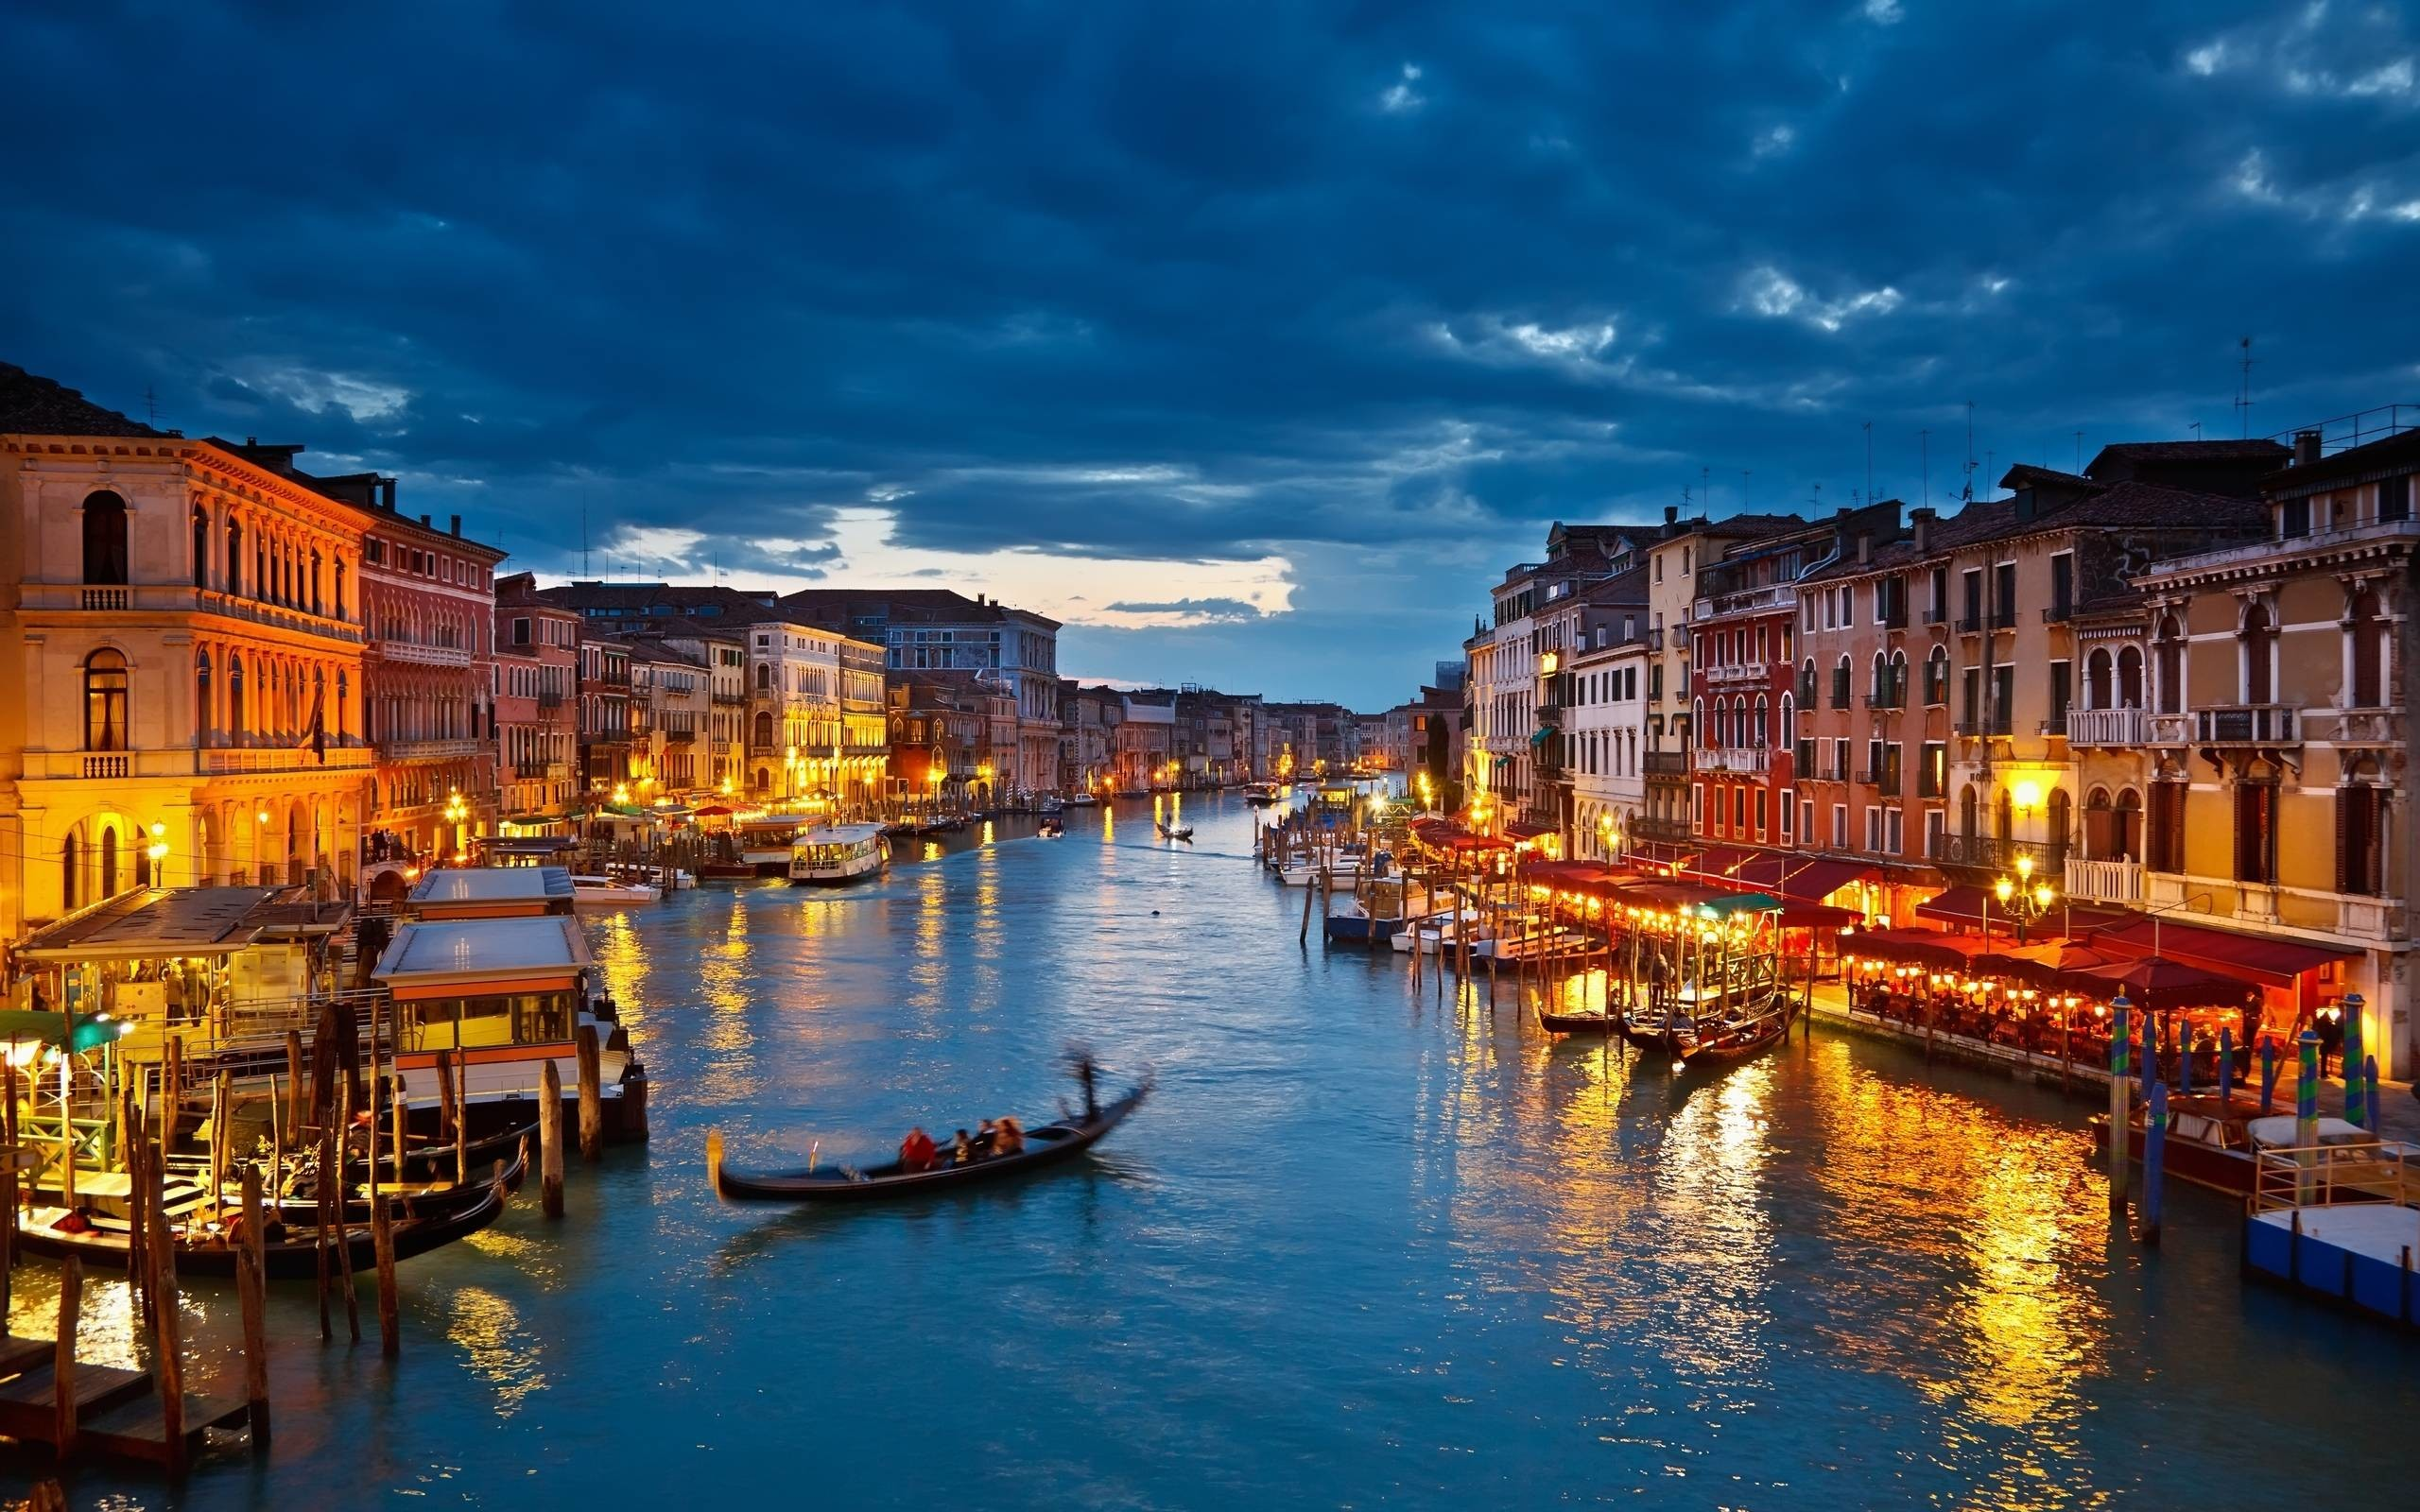 2560x1600 Nice Hd Italy Desktop Background Wallpaper Picture